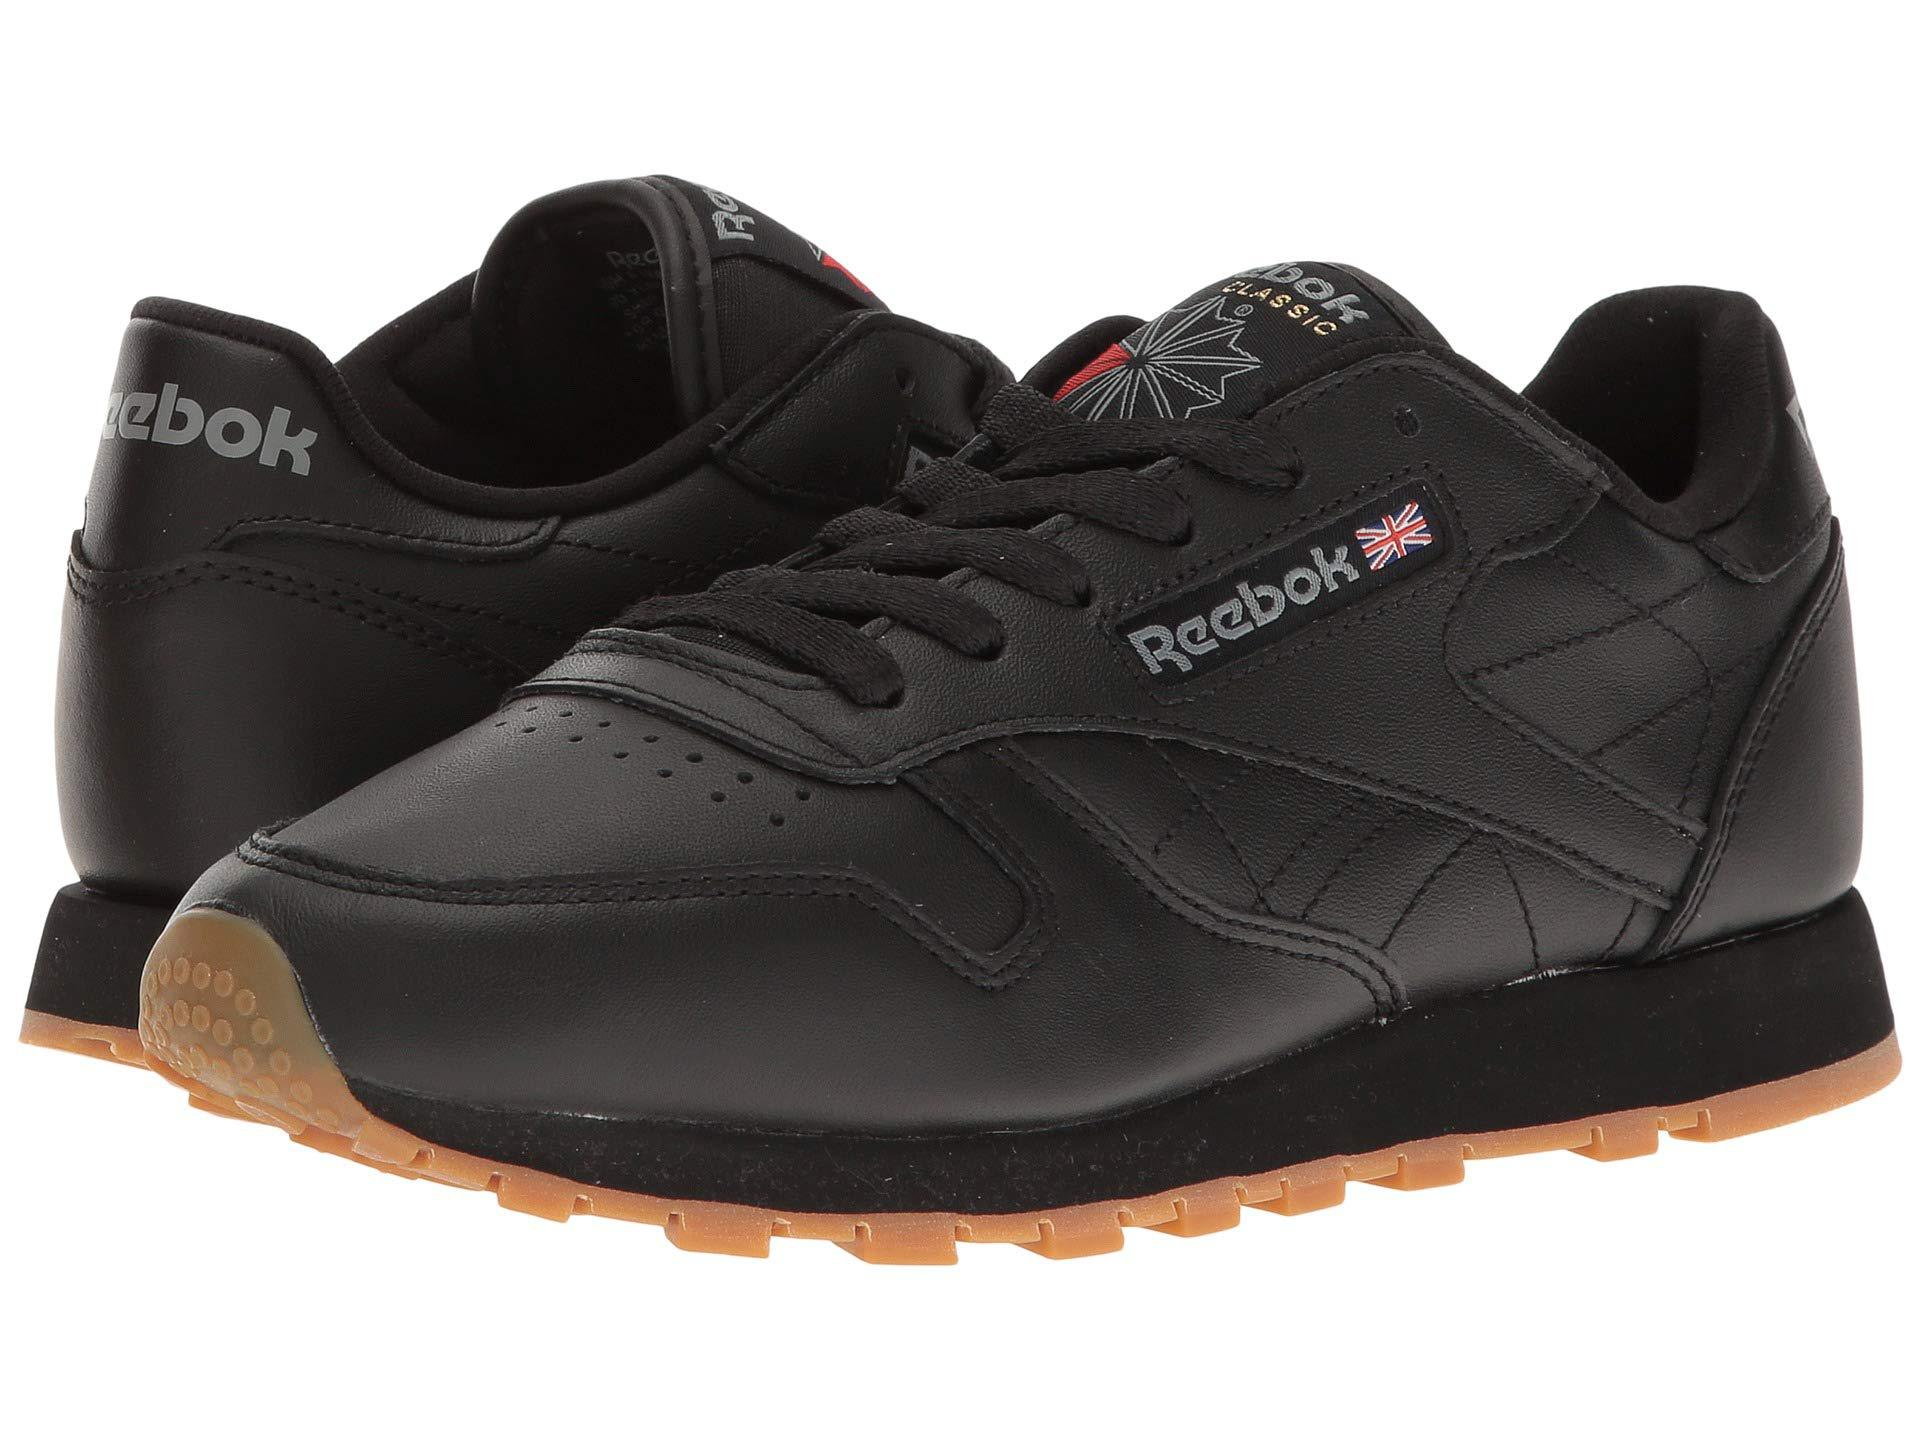 Lyst - Reebok Classic Leather (black gum) Women s Classic Shoes in Black c24a9262c5